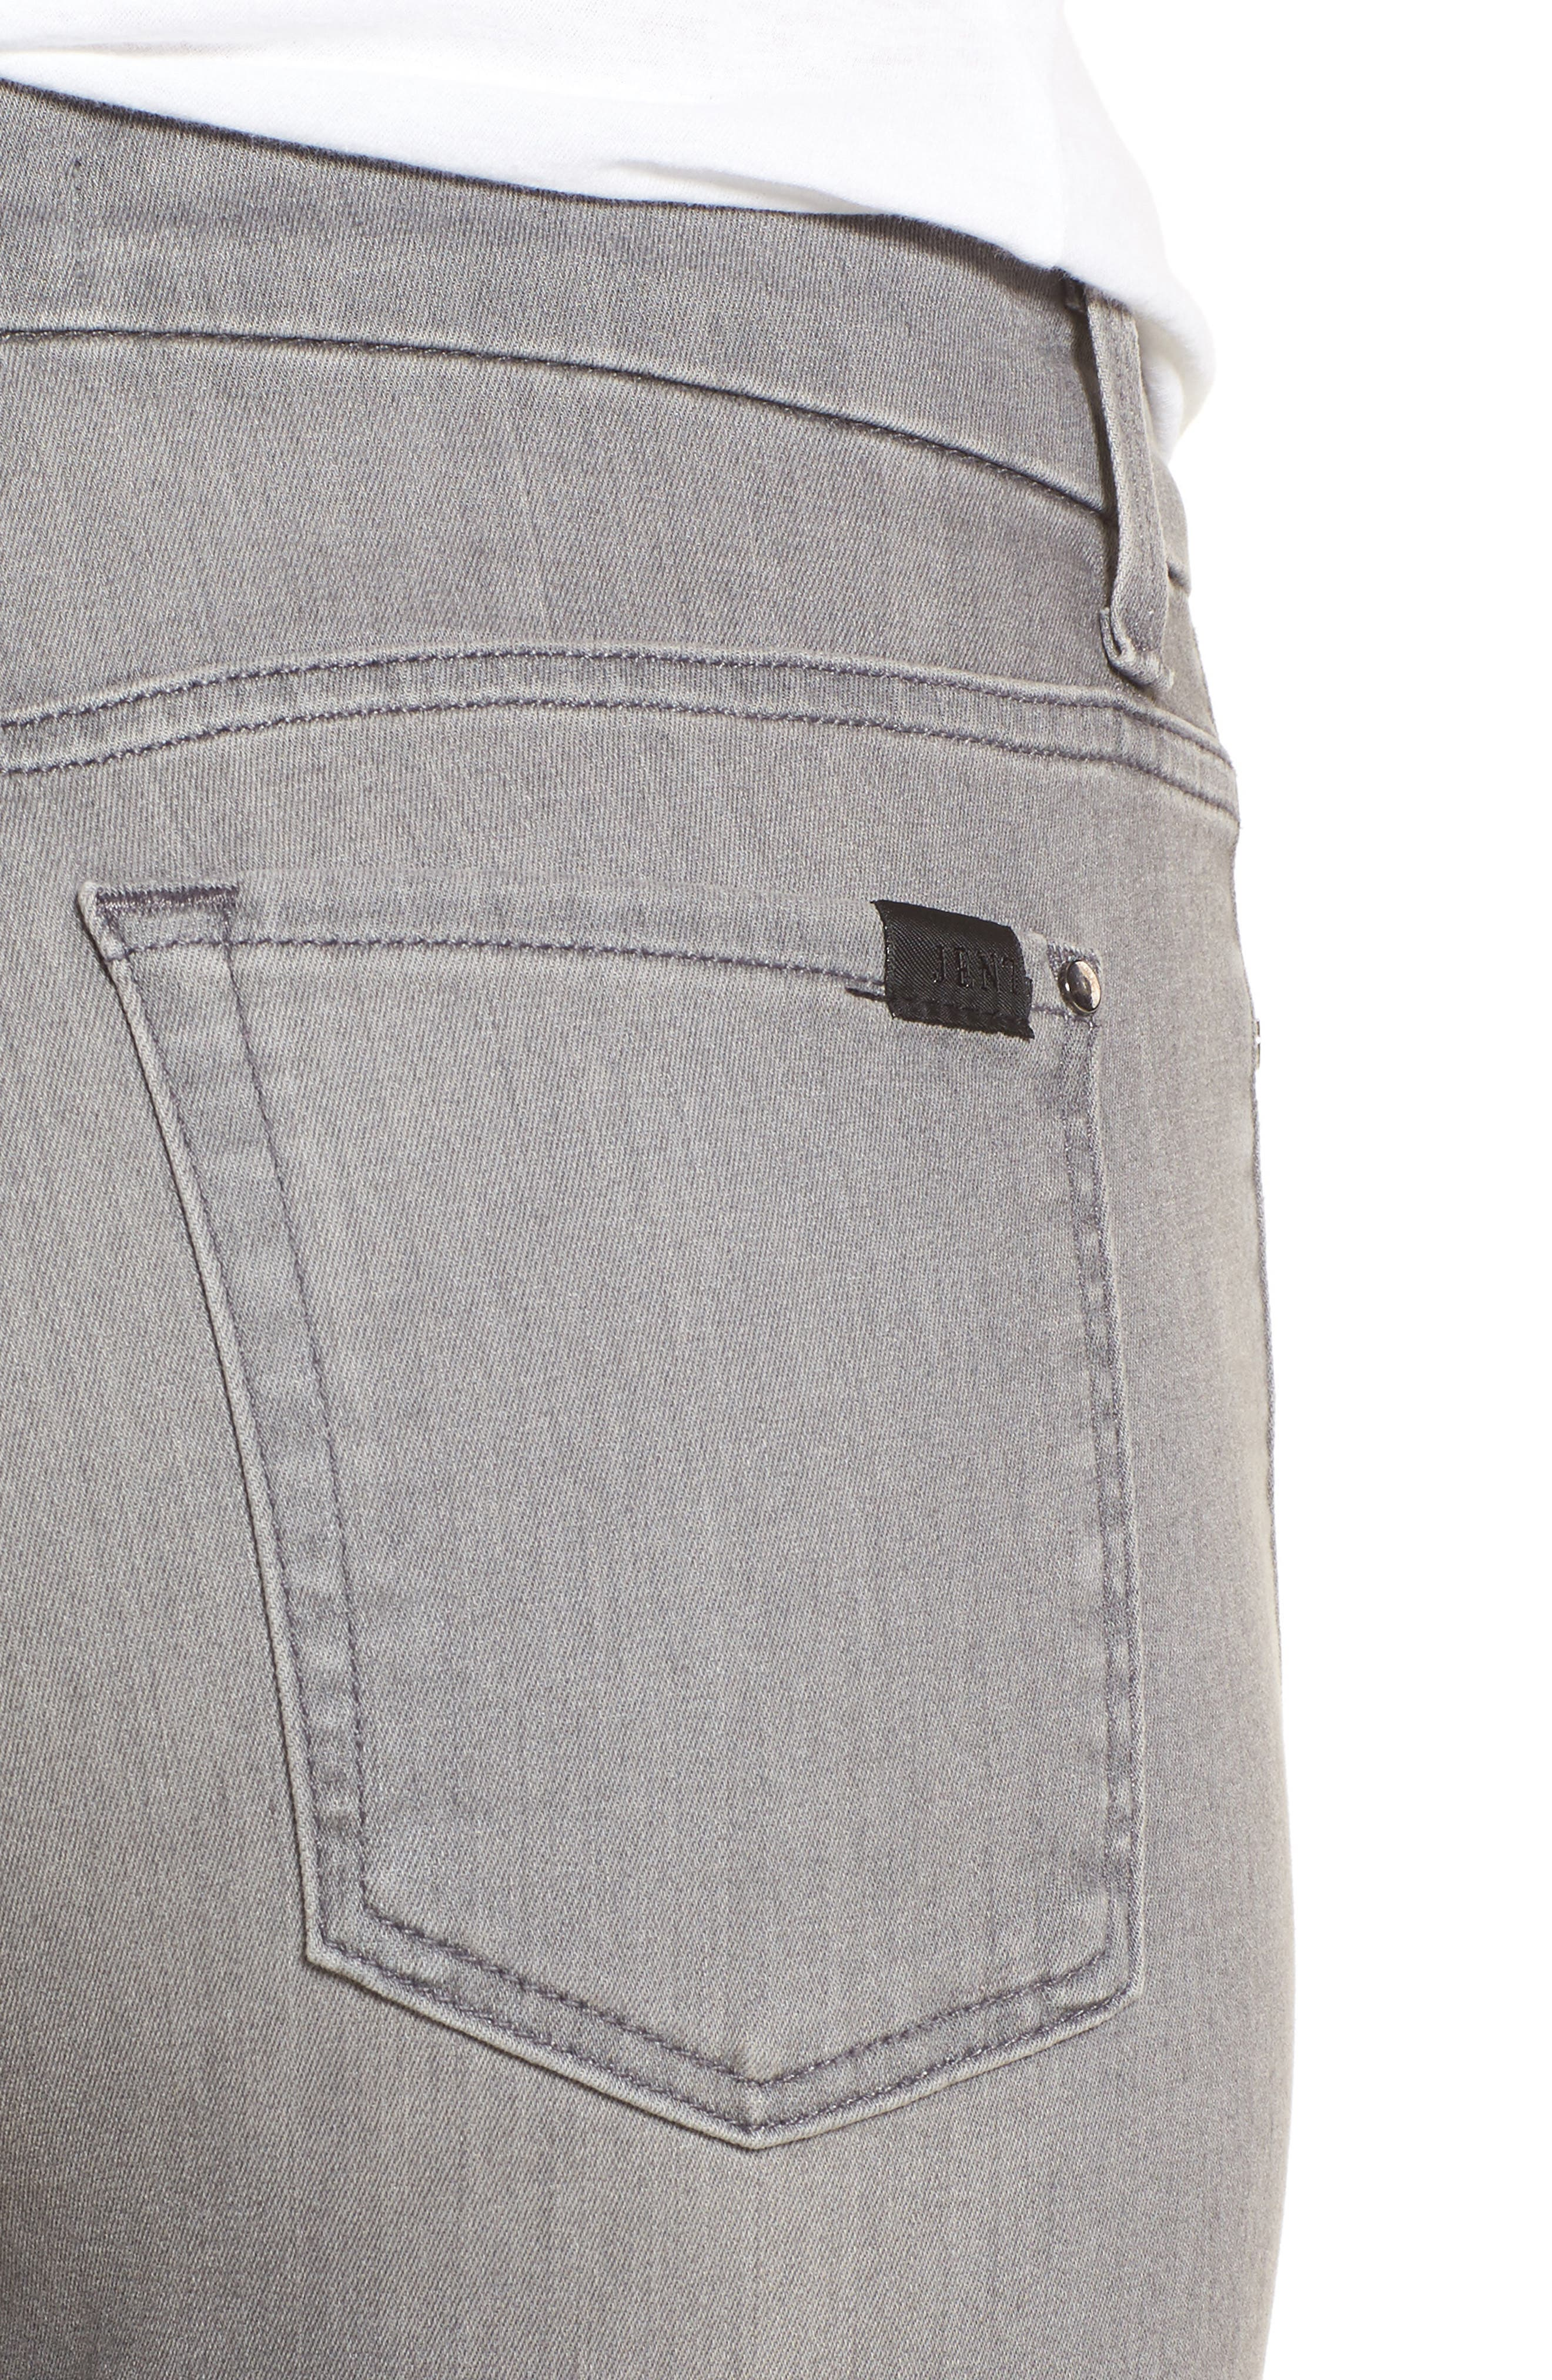 Stretch Ankle Skinny Jeans,                             Alternate thumbnail 4, color,                             022